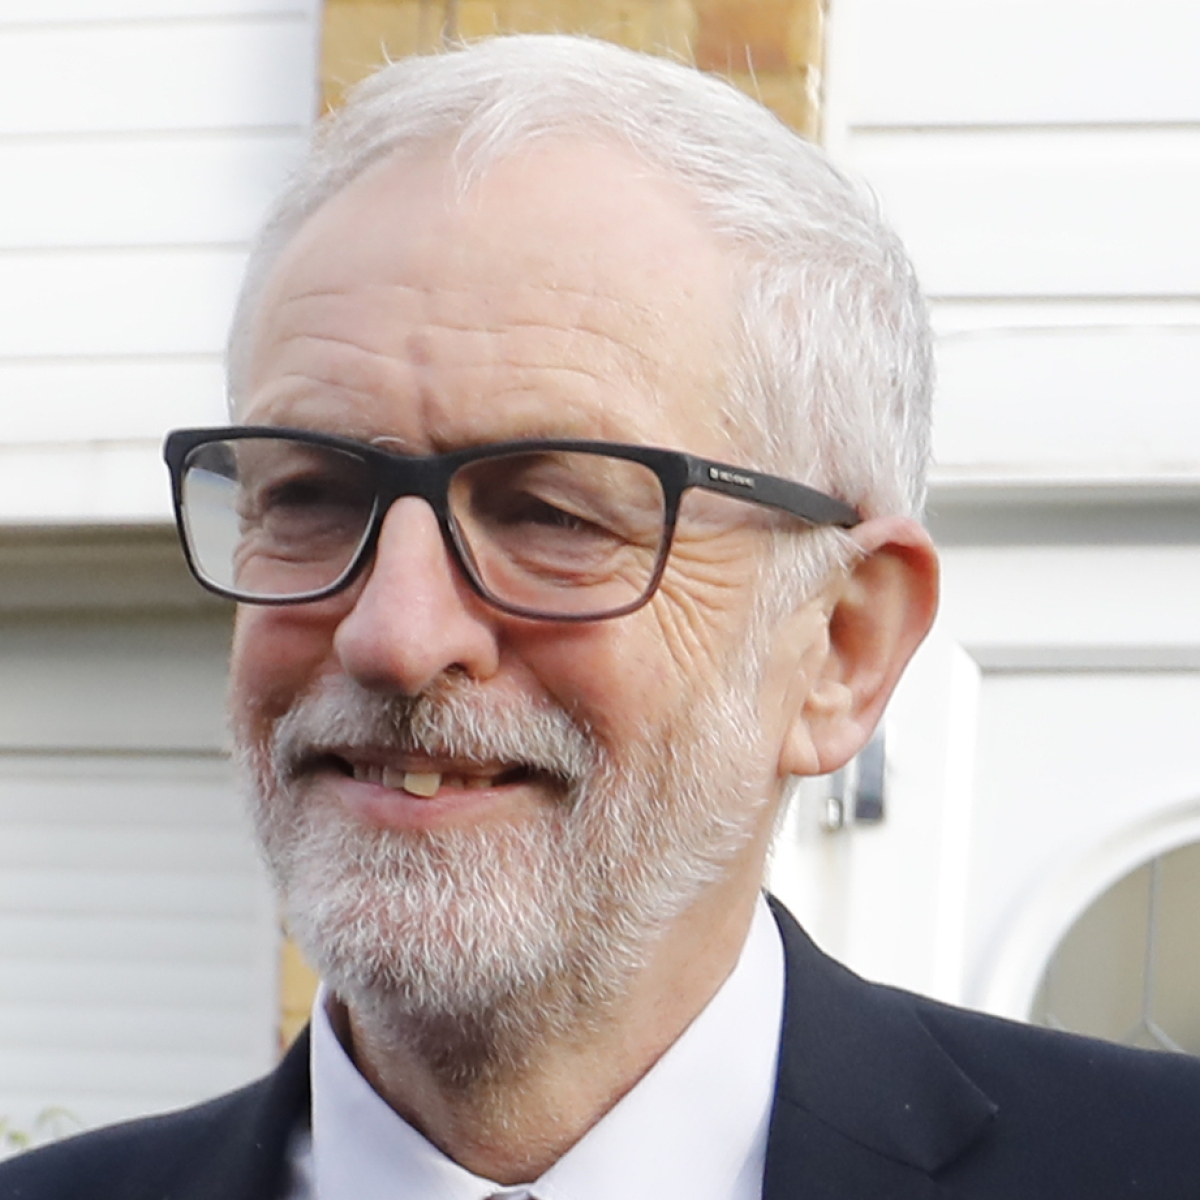 Corbyn's sons slam attacks against father on twitter